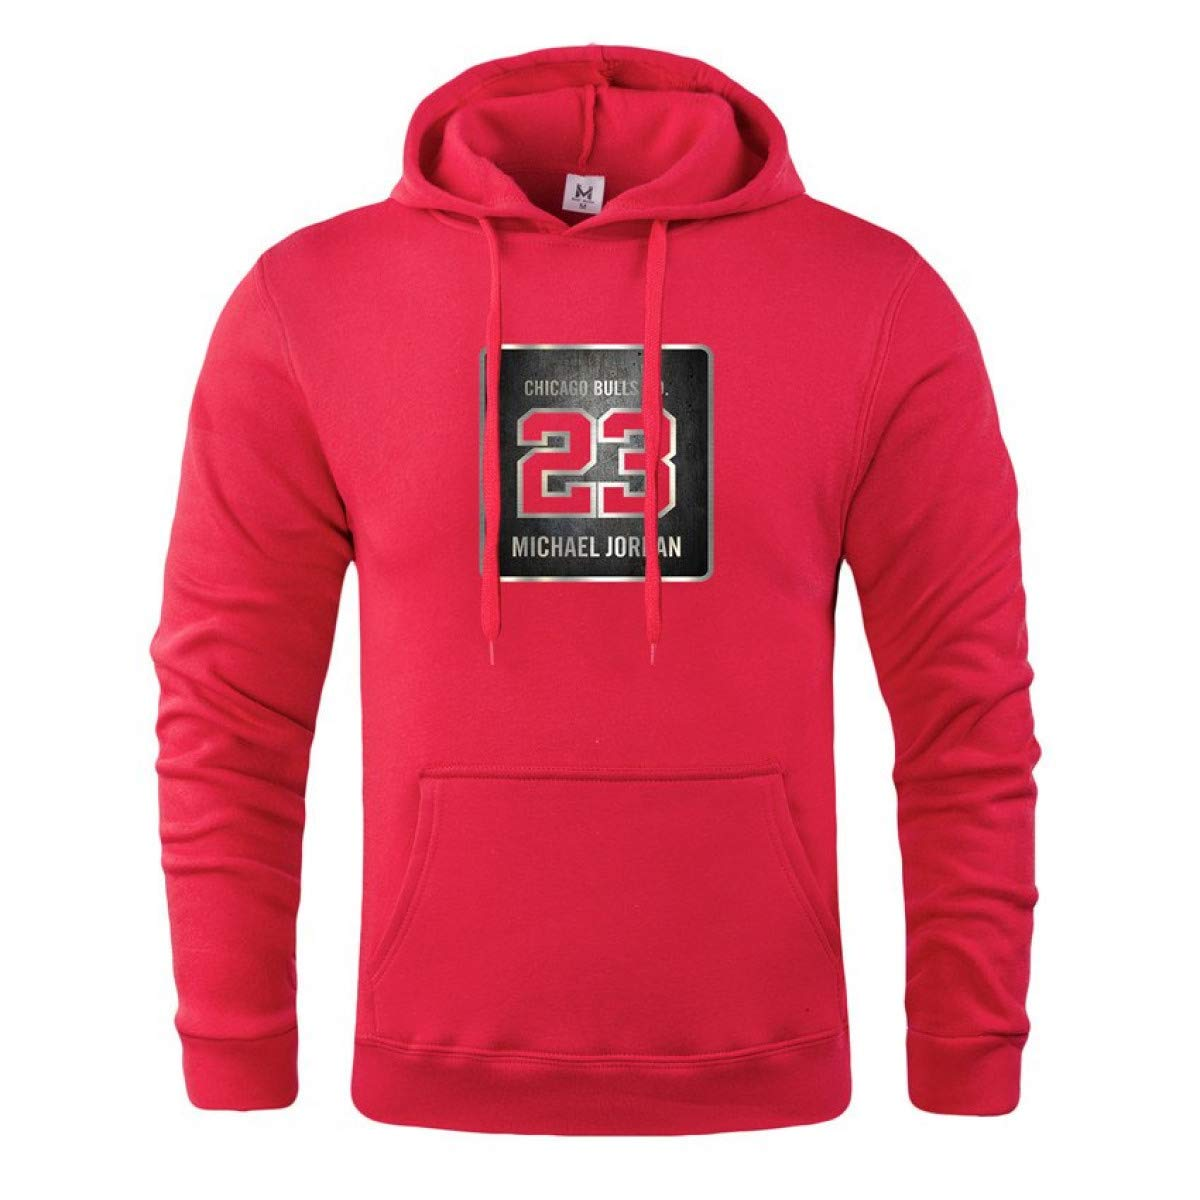 WEEKEND SHOP Sportswear Hoodies Men Long Sleeve Hoodie Slim Fit Sweatshirt Hoodies for Mens at Amazon Mens Clothing store: